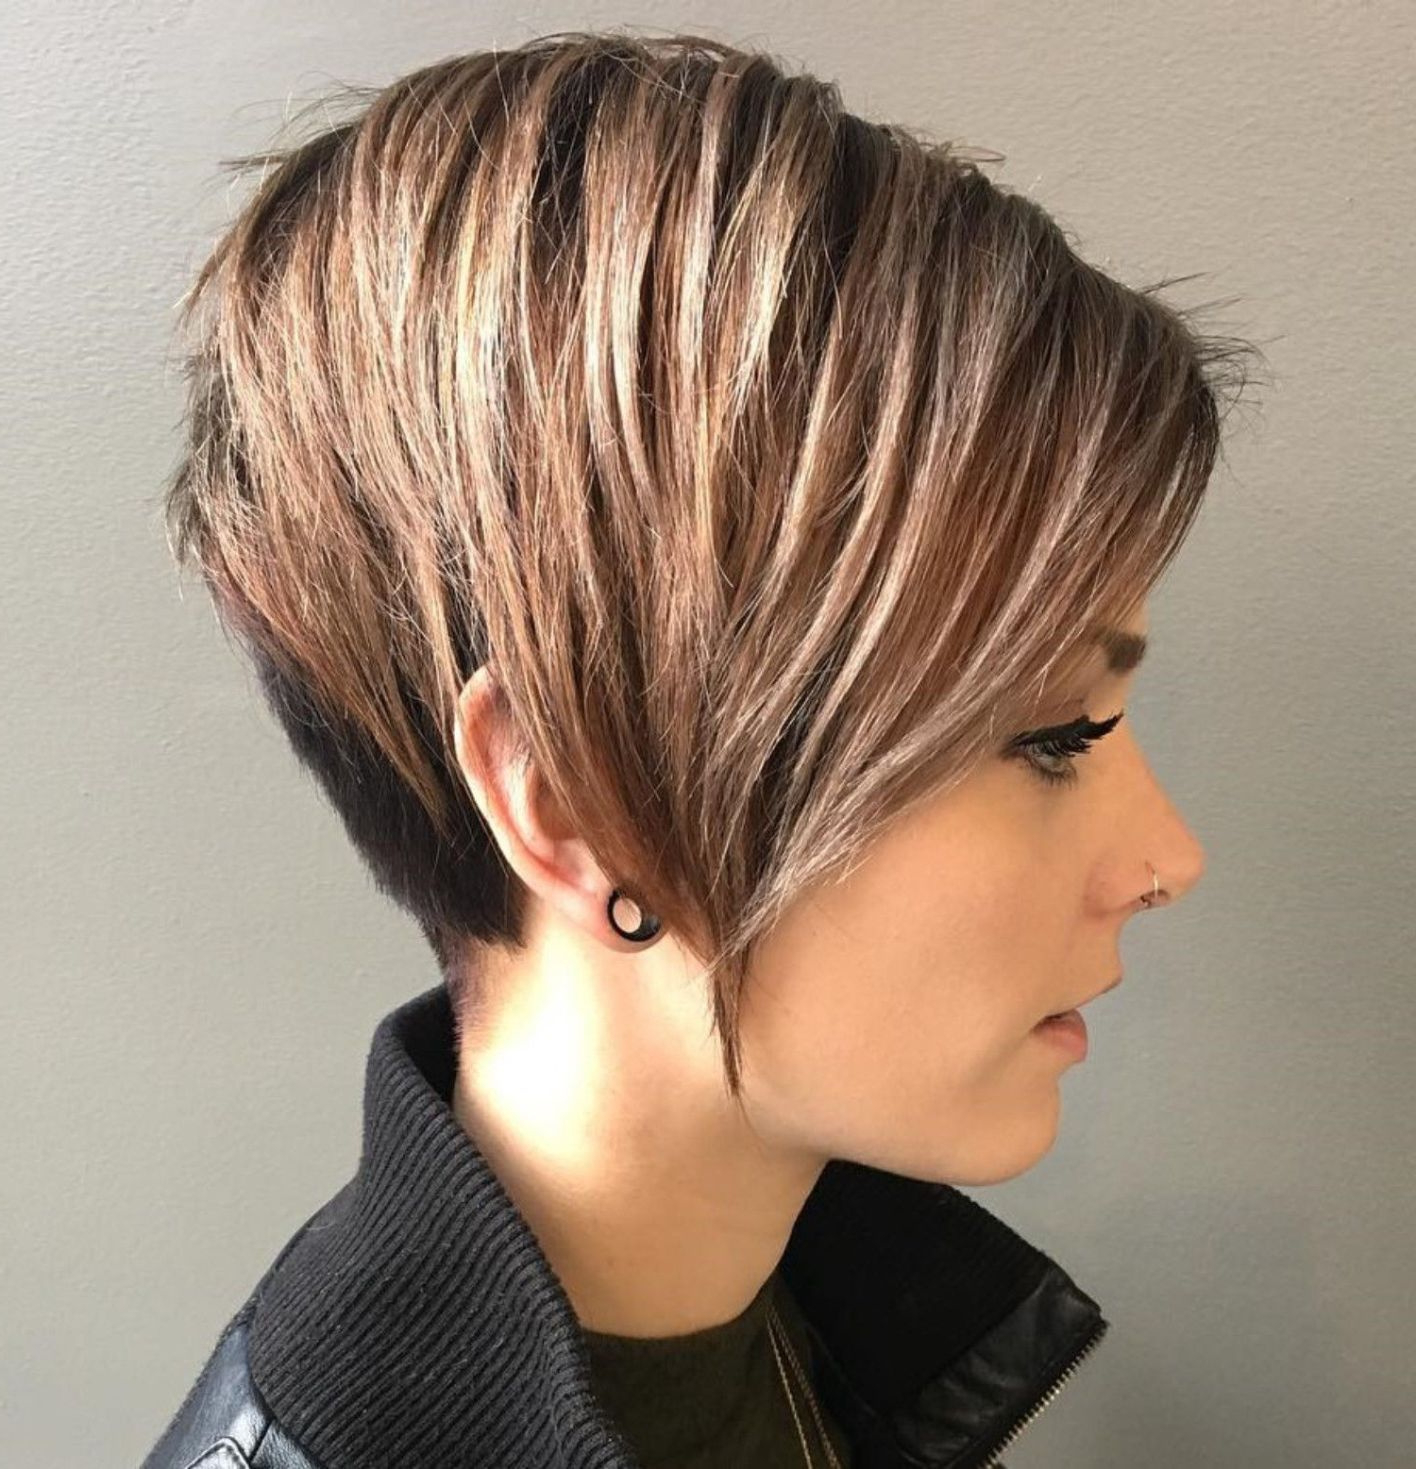 Pixie Haircuts With Bangs, Special Beauty Of Women! Throughout Preferred Choppy Pixie Haircuts With Short Bangs (View 5 of 20)